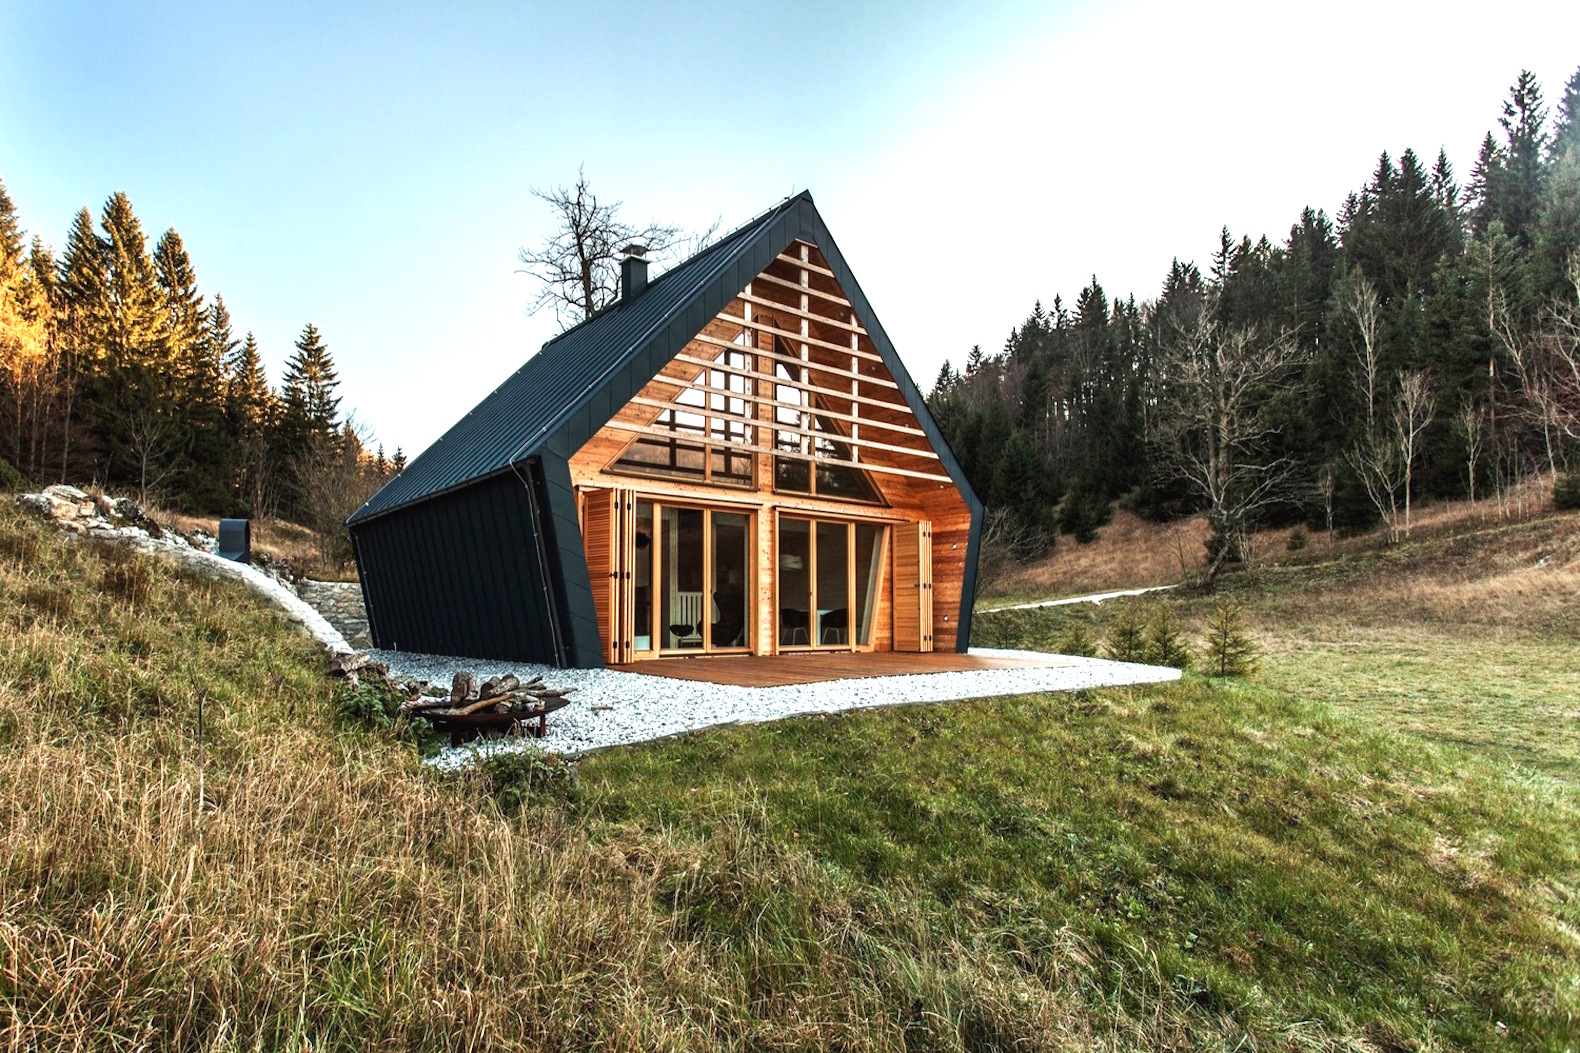 Gorgeous forest home will fulfill your tiny cabin dreams